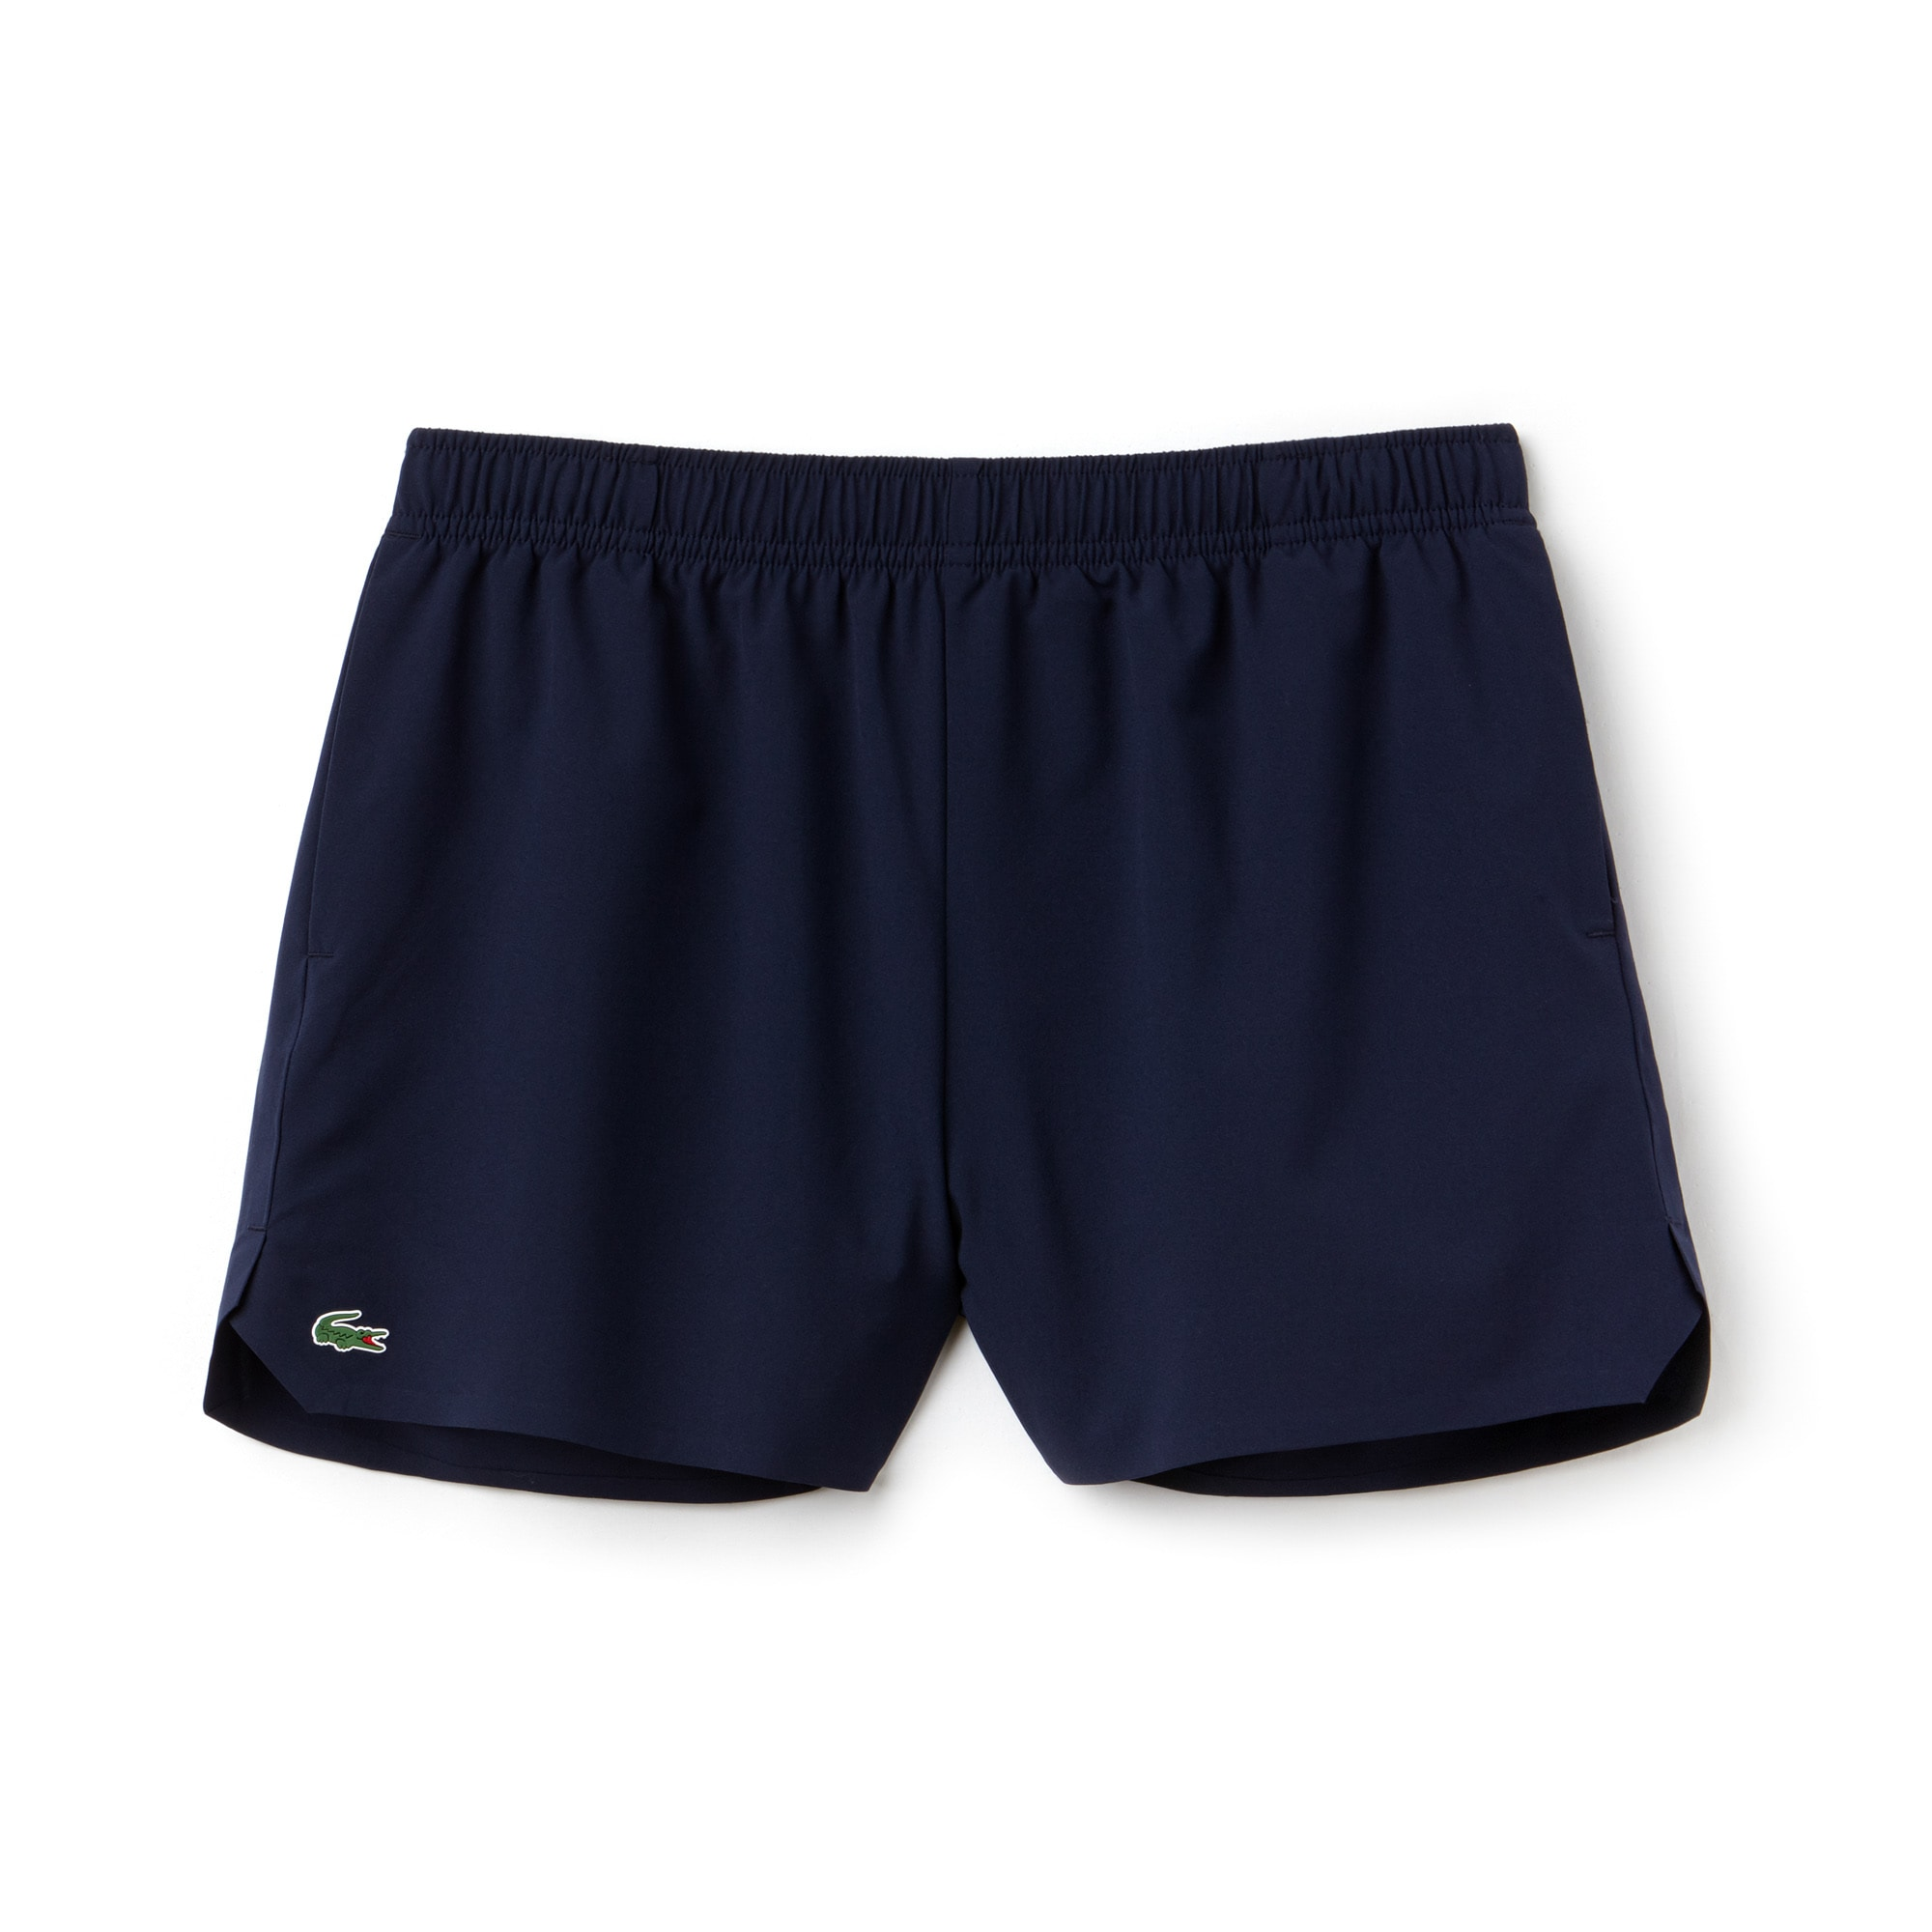 Women's SPORT Technical Tennis Shorts